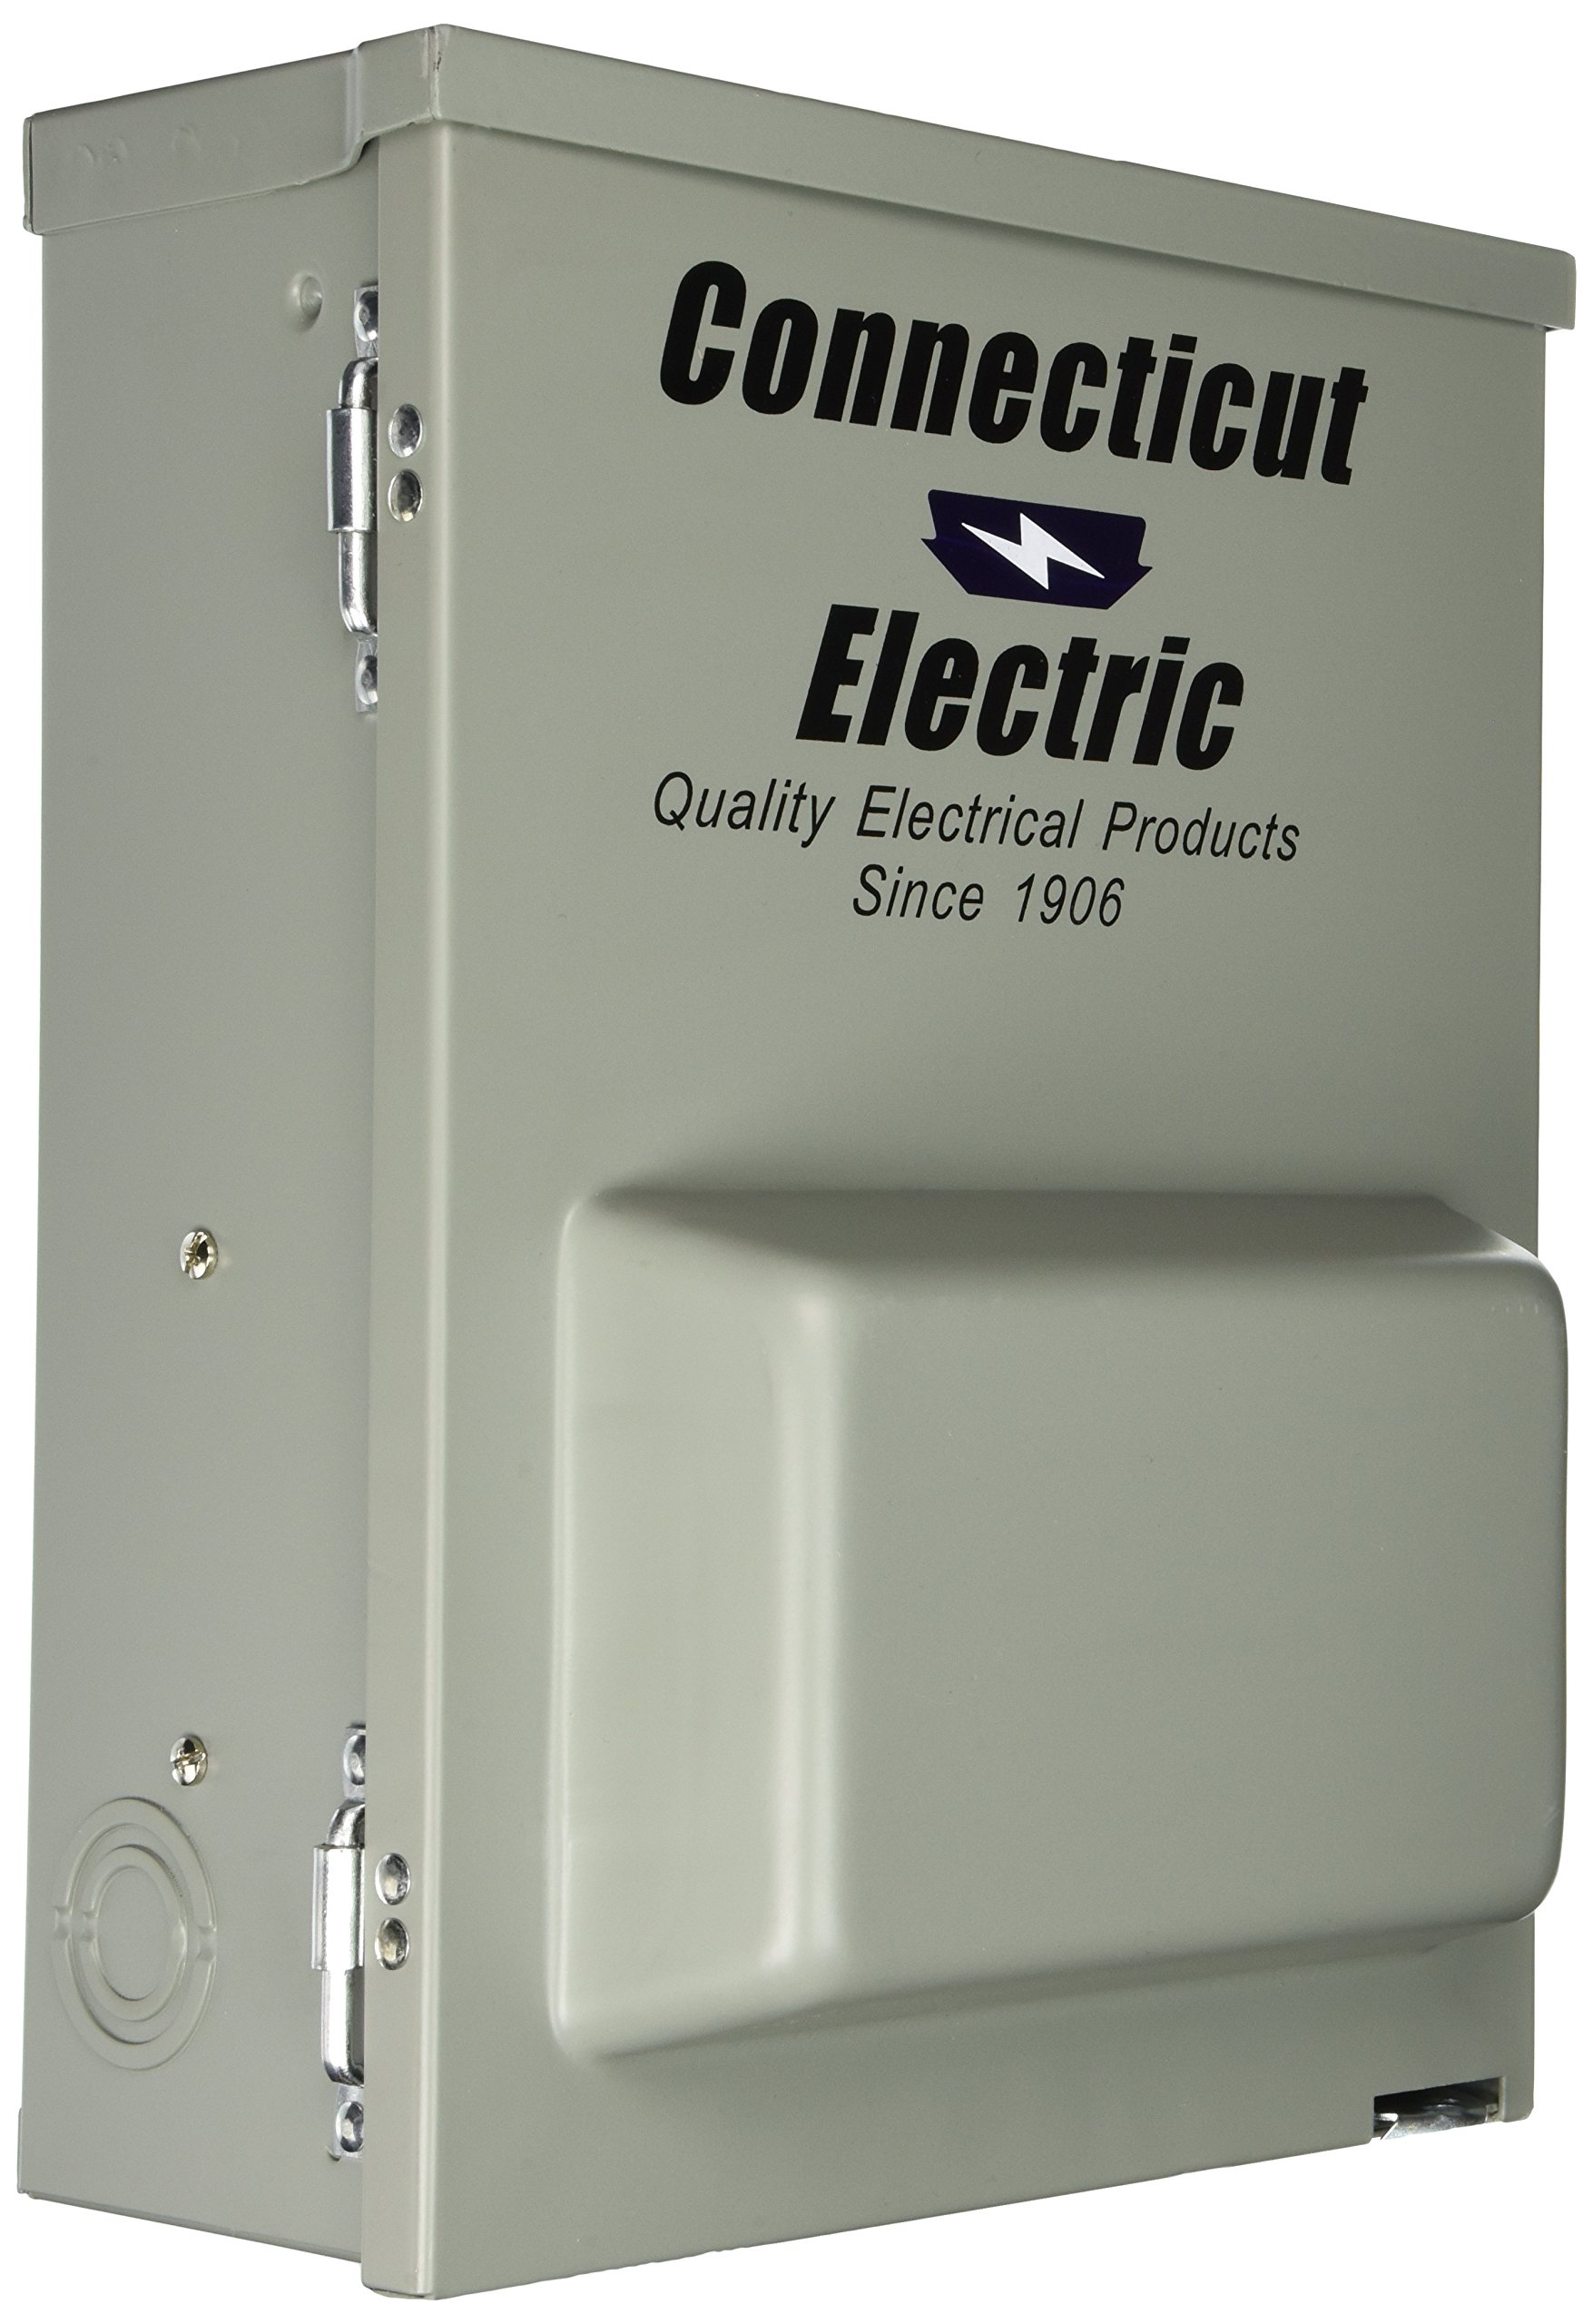 Outdoor Power Outlet, 120/240V, 80A by Connecticut Electric